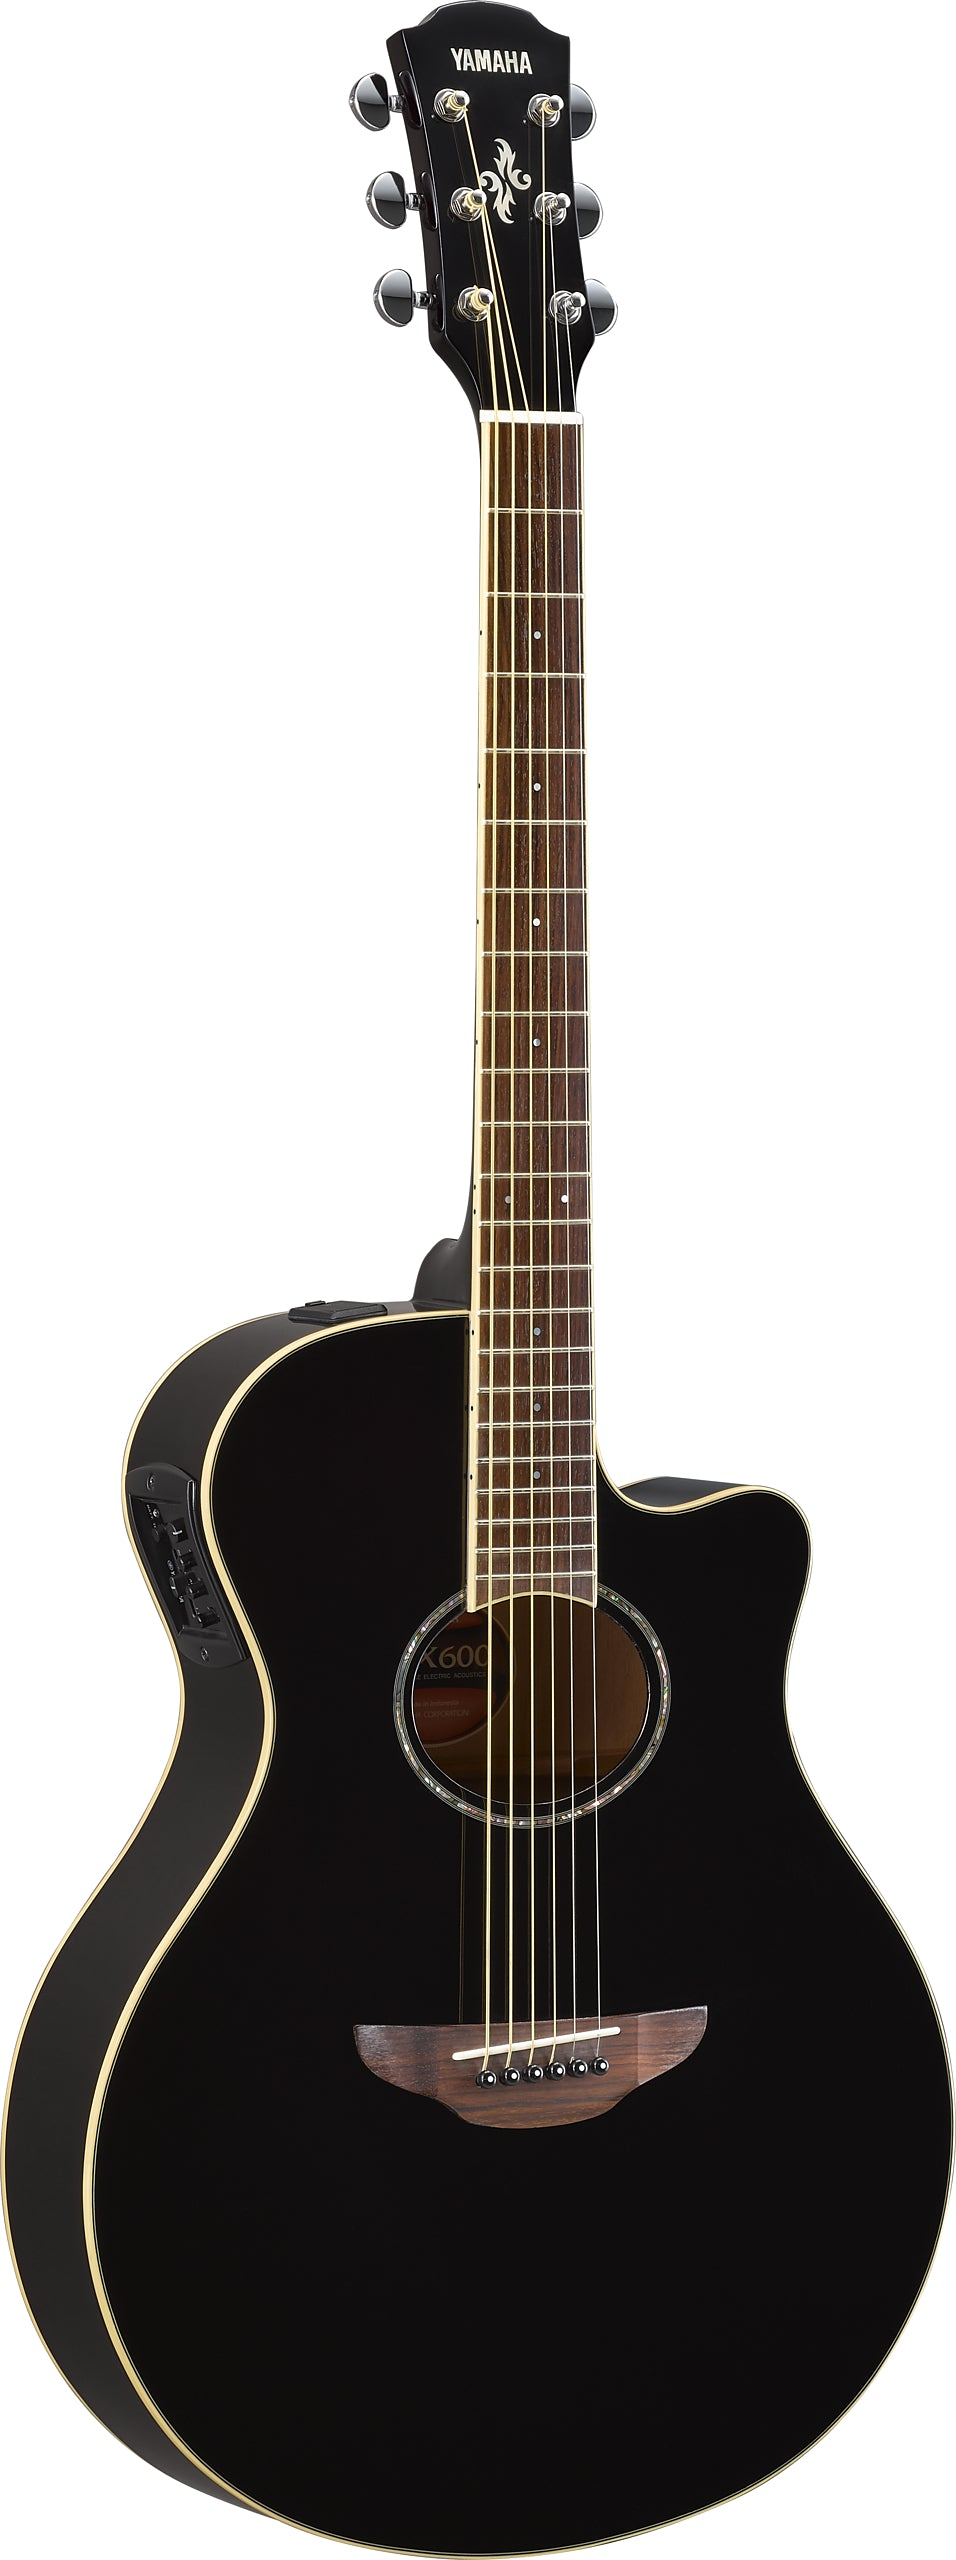 Yamaha APX600 Acoustic Guitar - Black